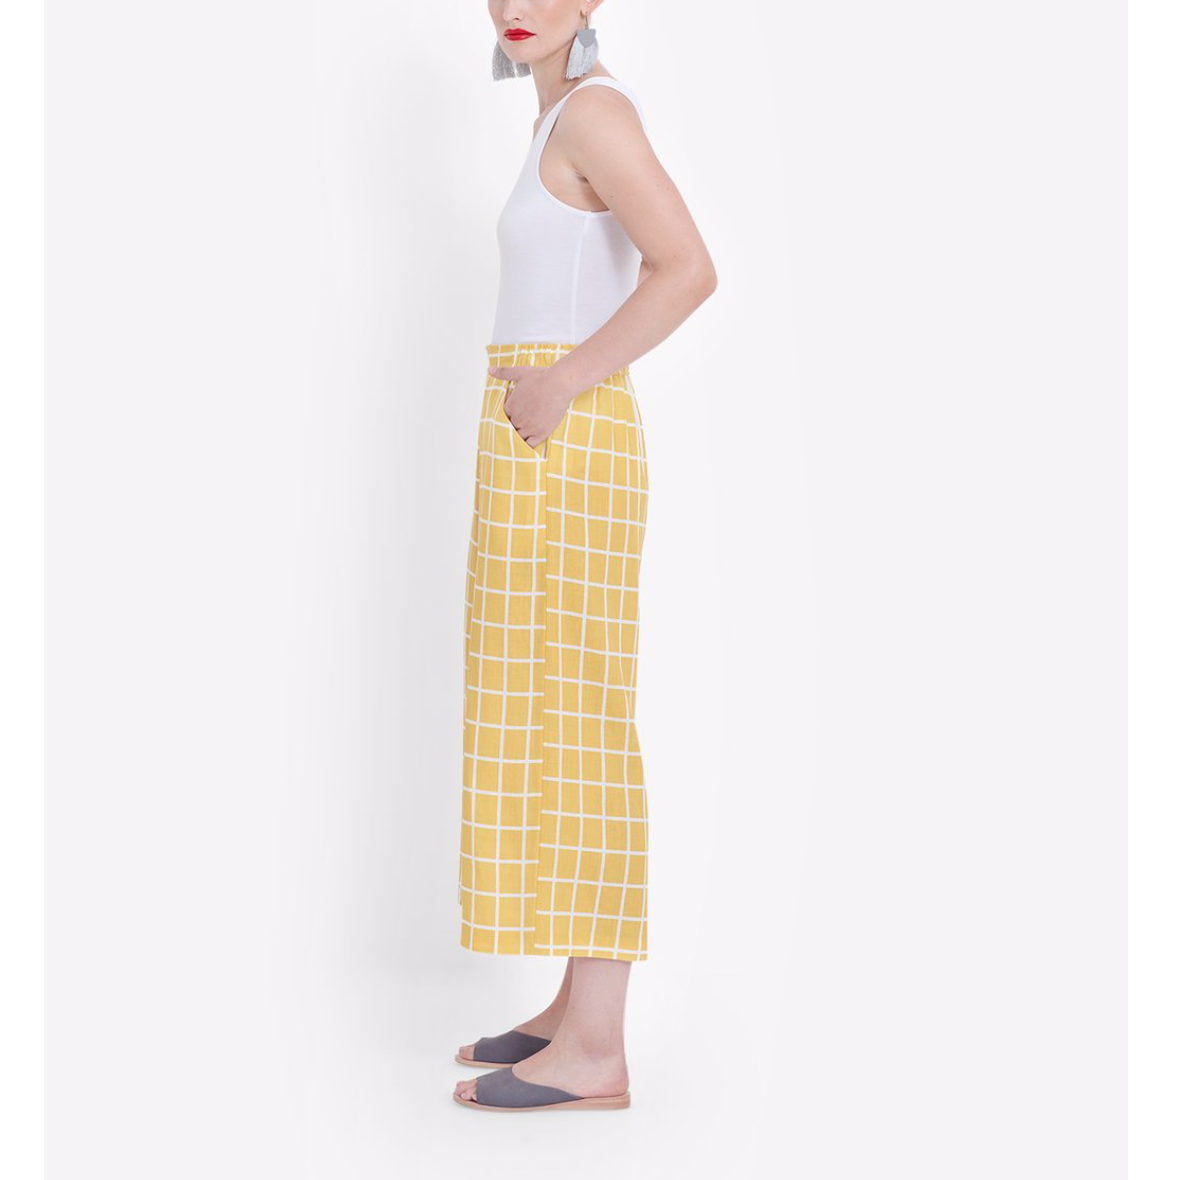 Hopen Pants - Yellow/White